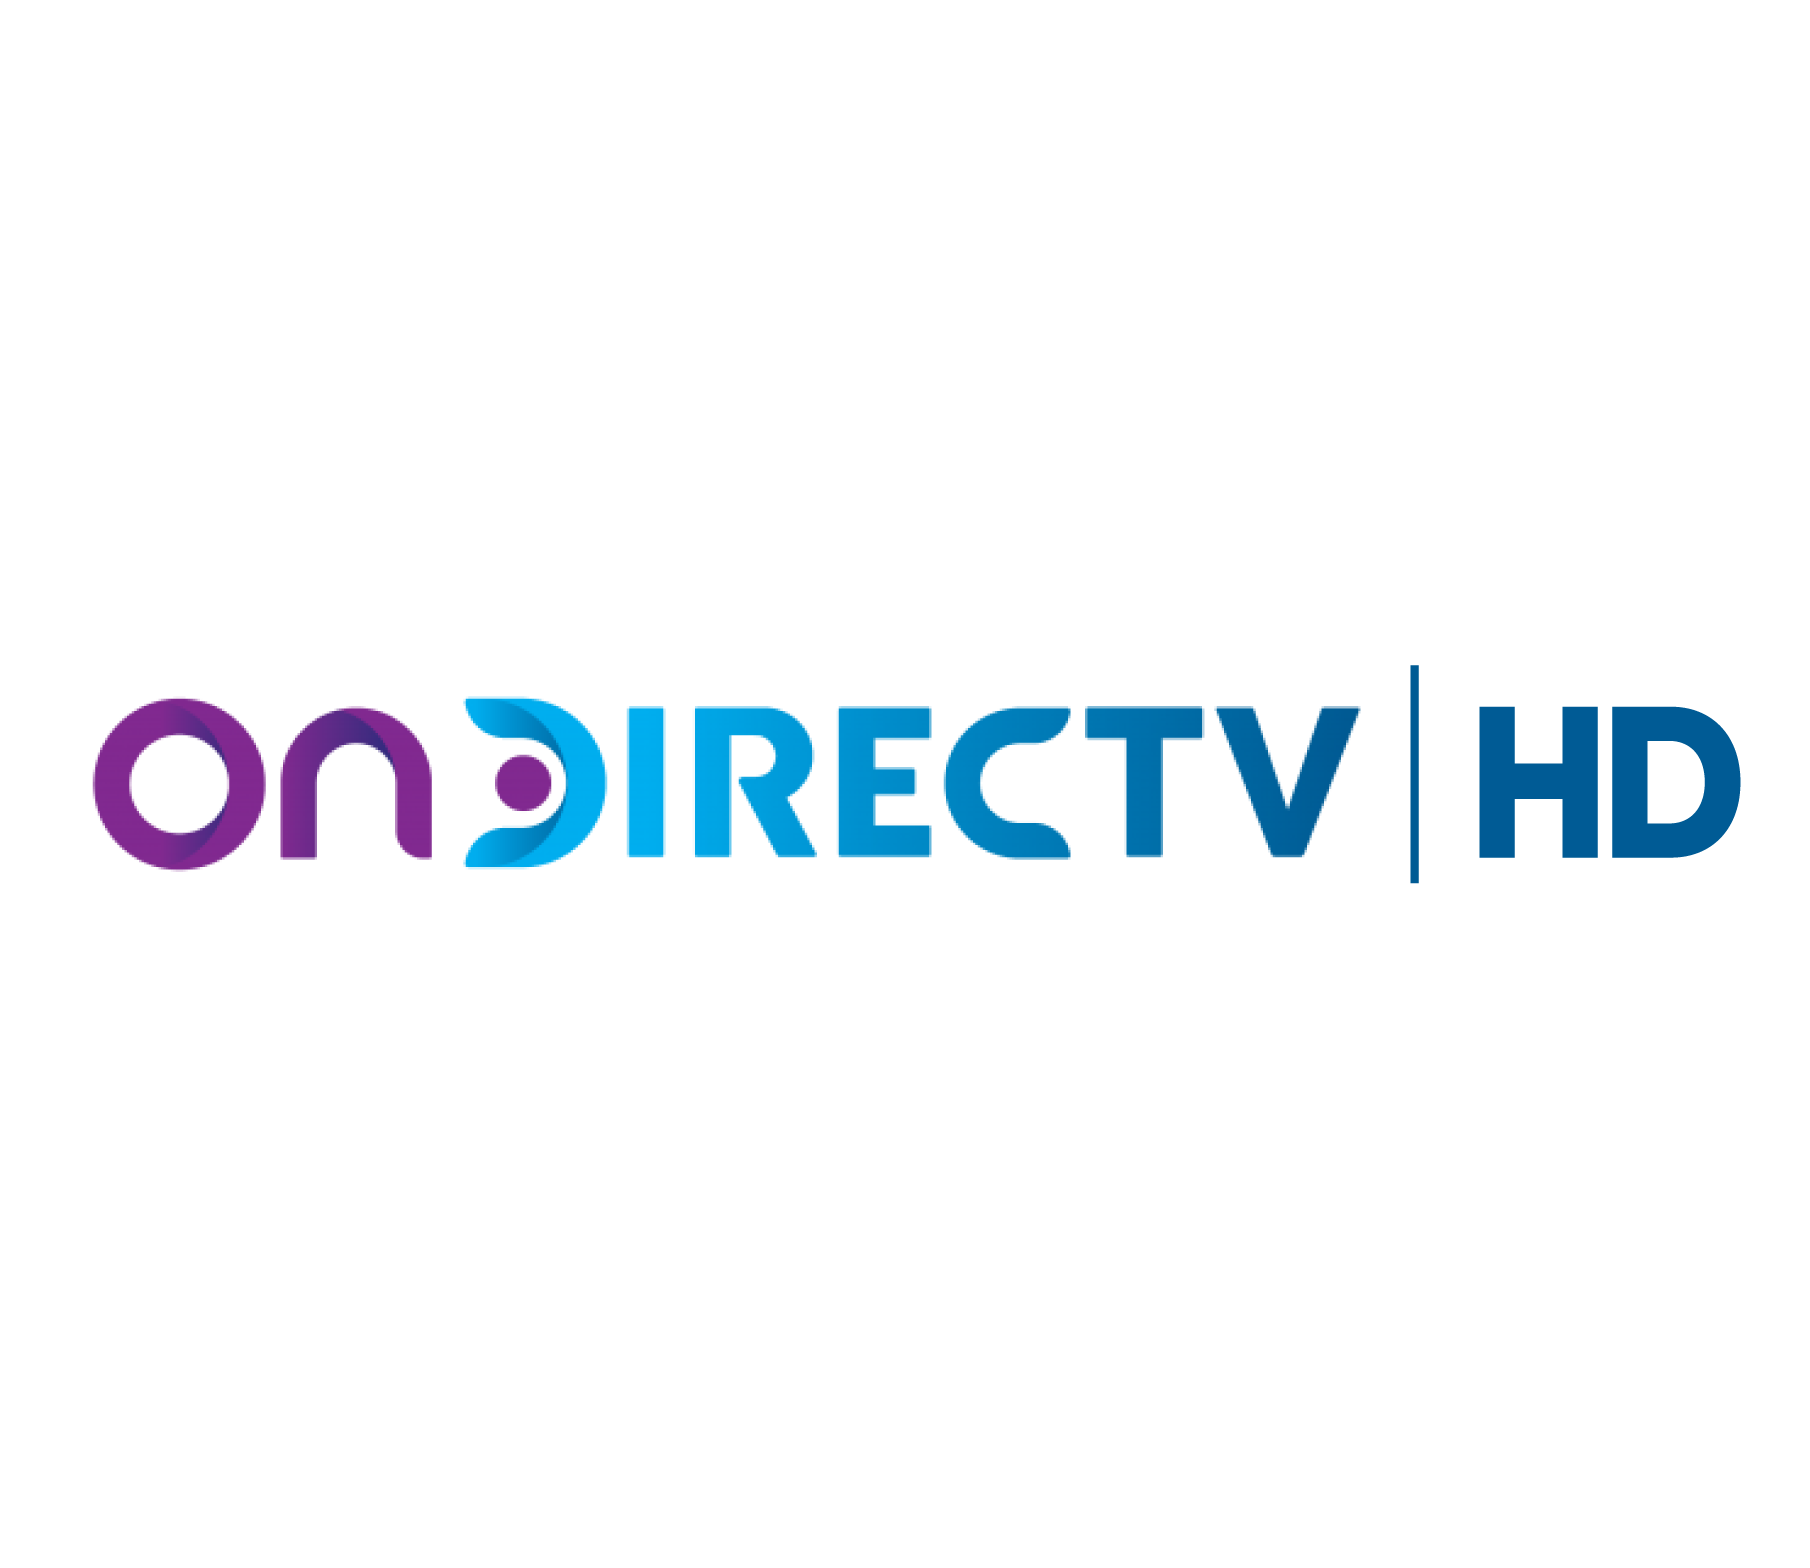 Canal OnDIRECTV HD